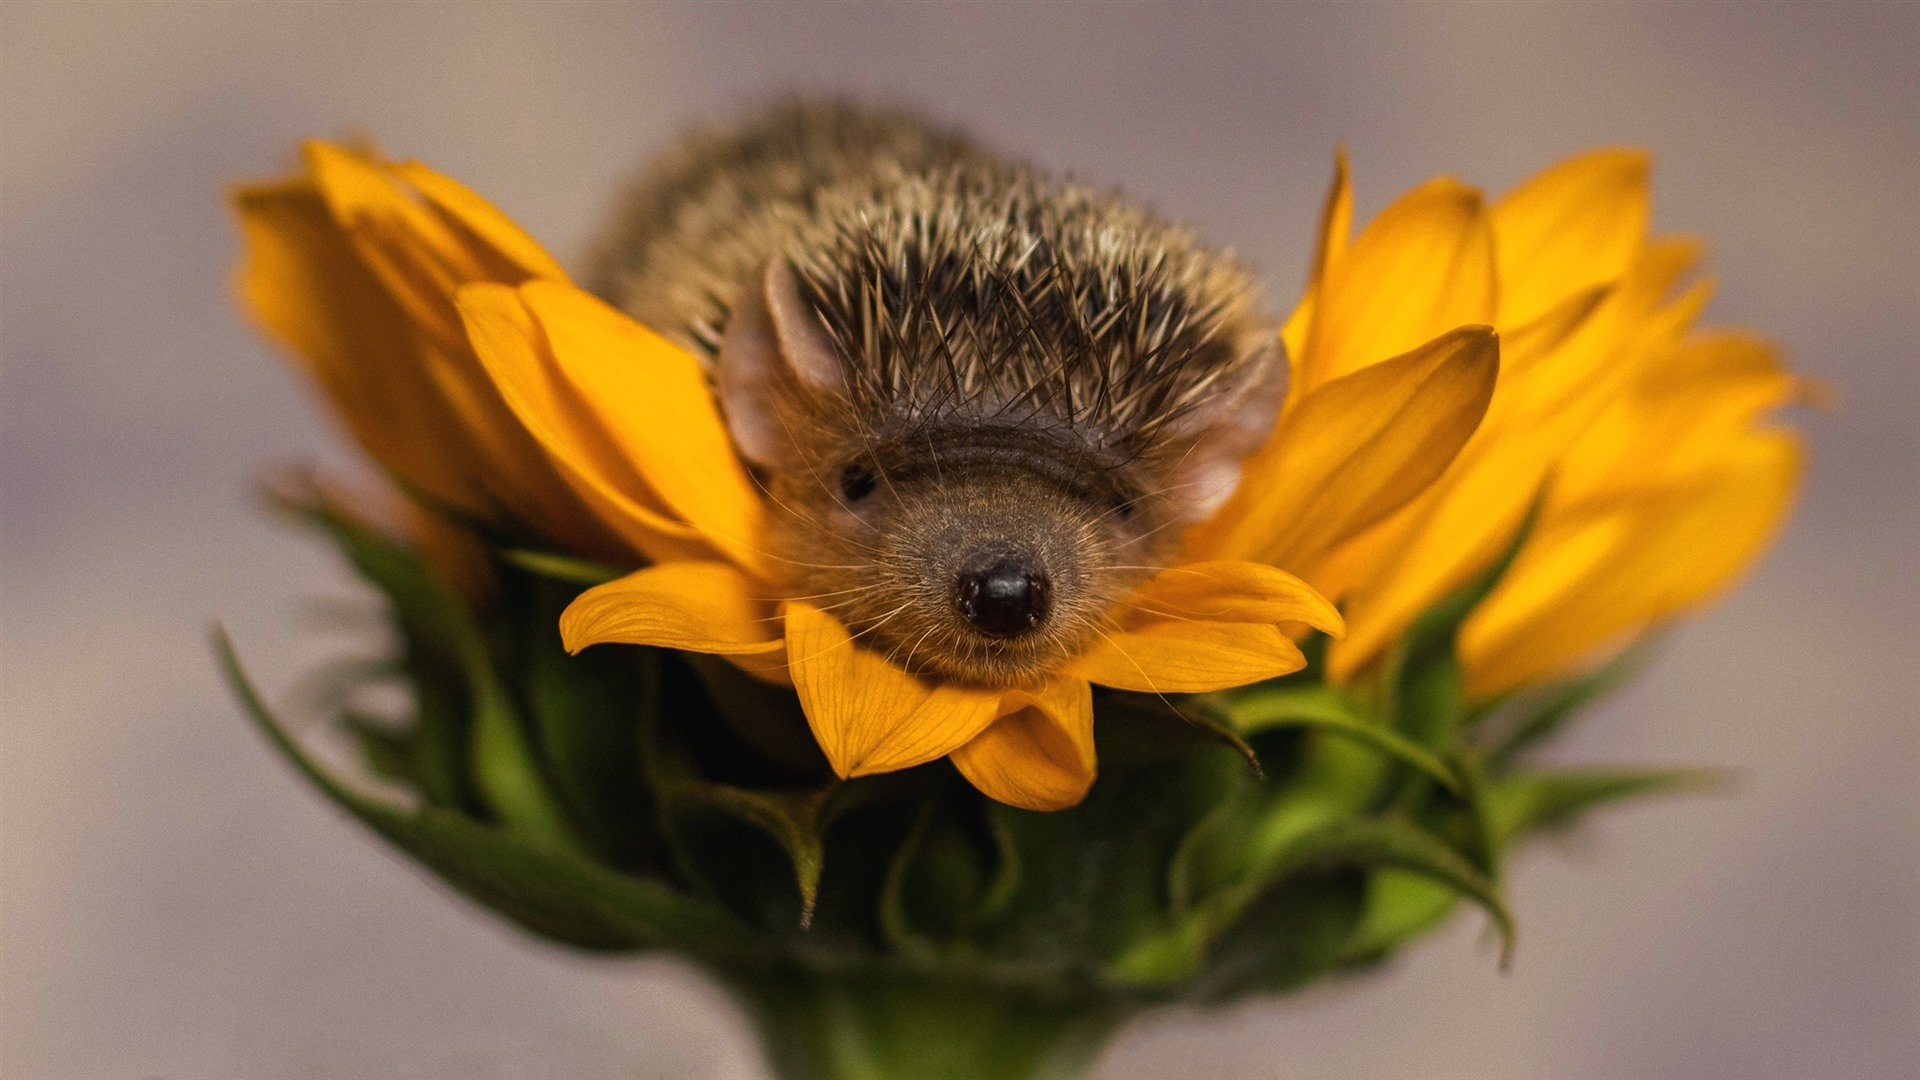 Cute Frog Wallpapers Hd Wallpaper Hedgehog Sunflower Yellow Petals 2560x1440 Qhd